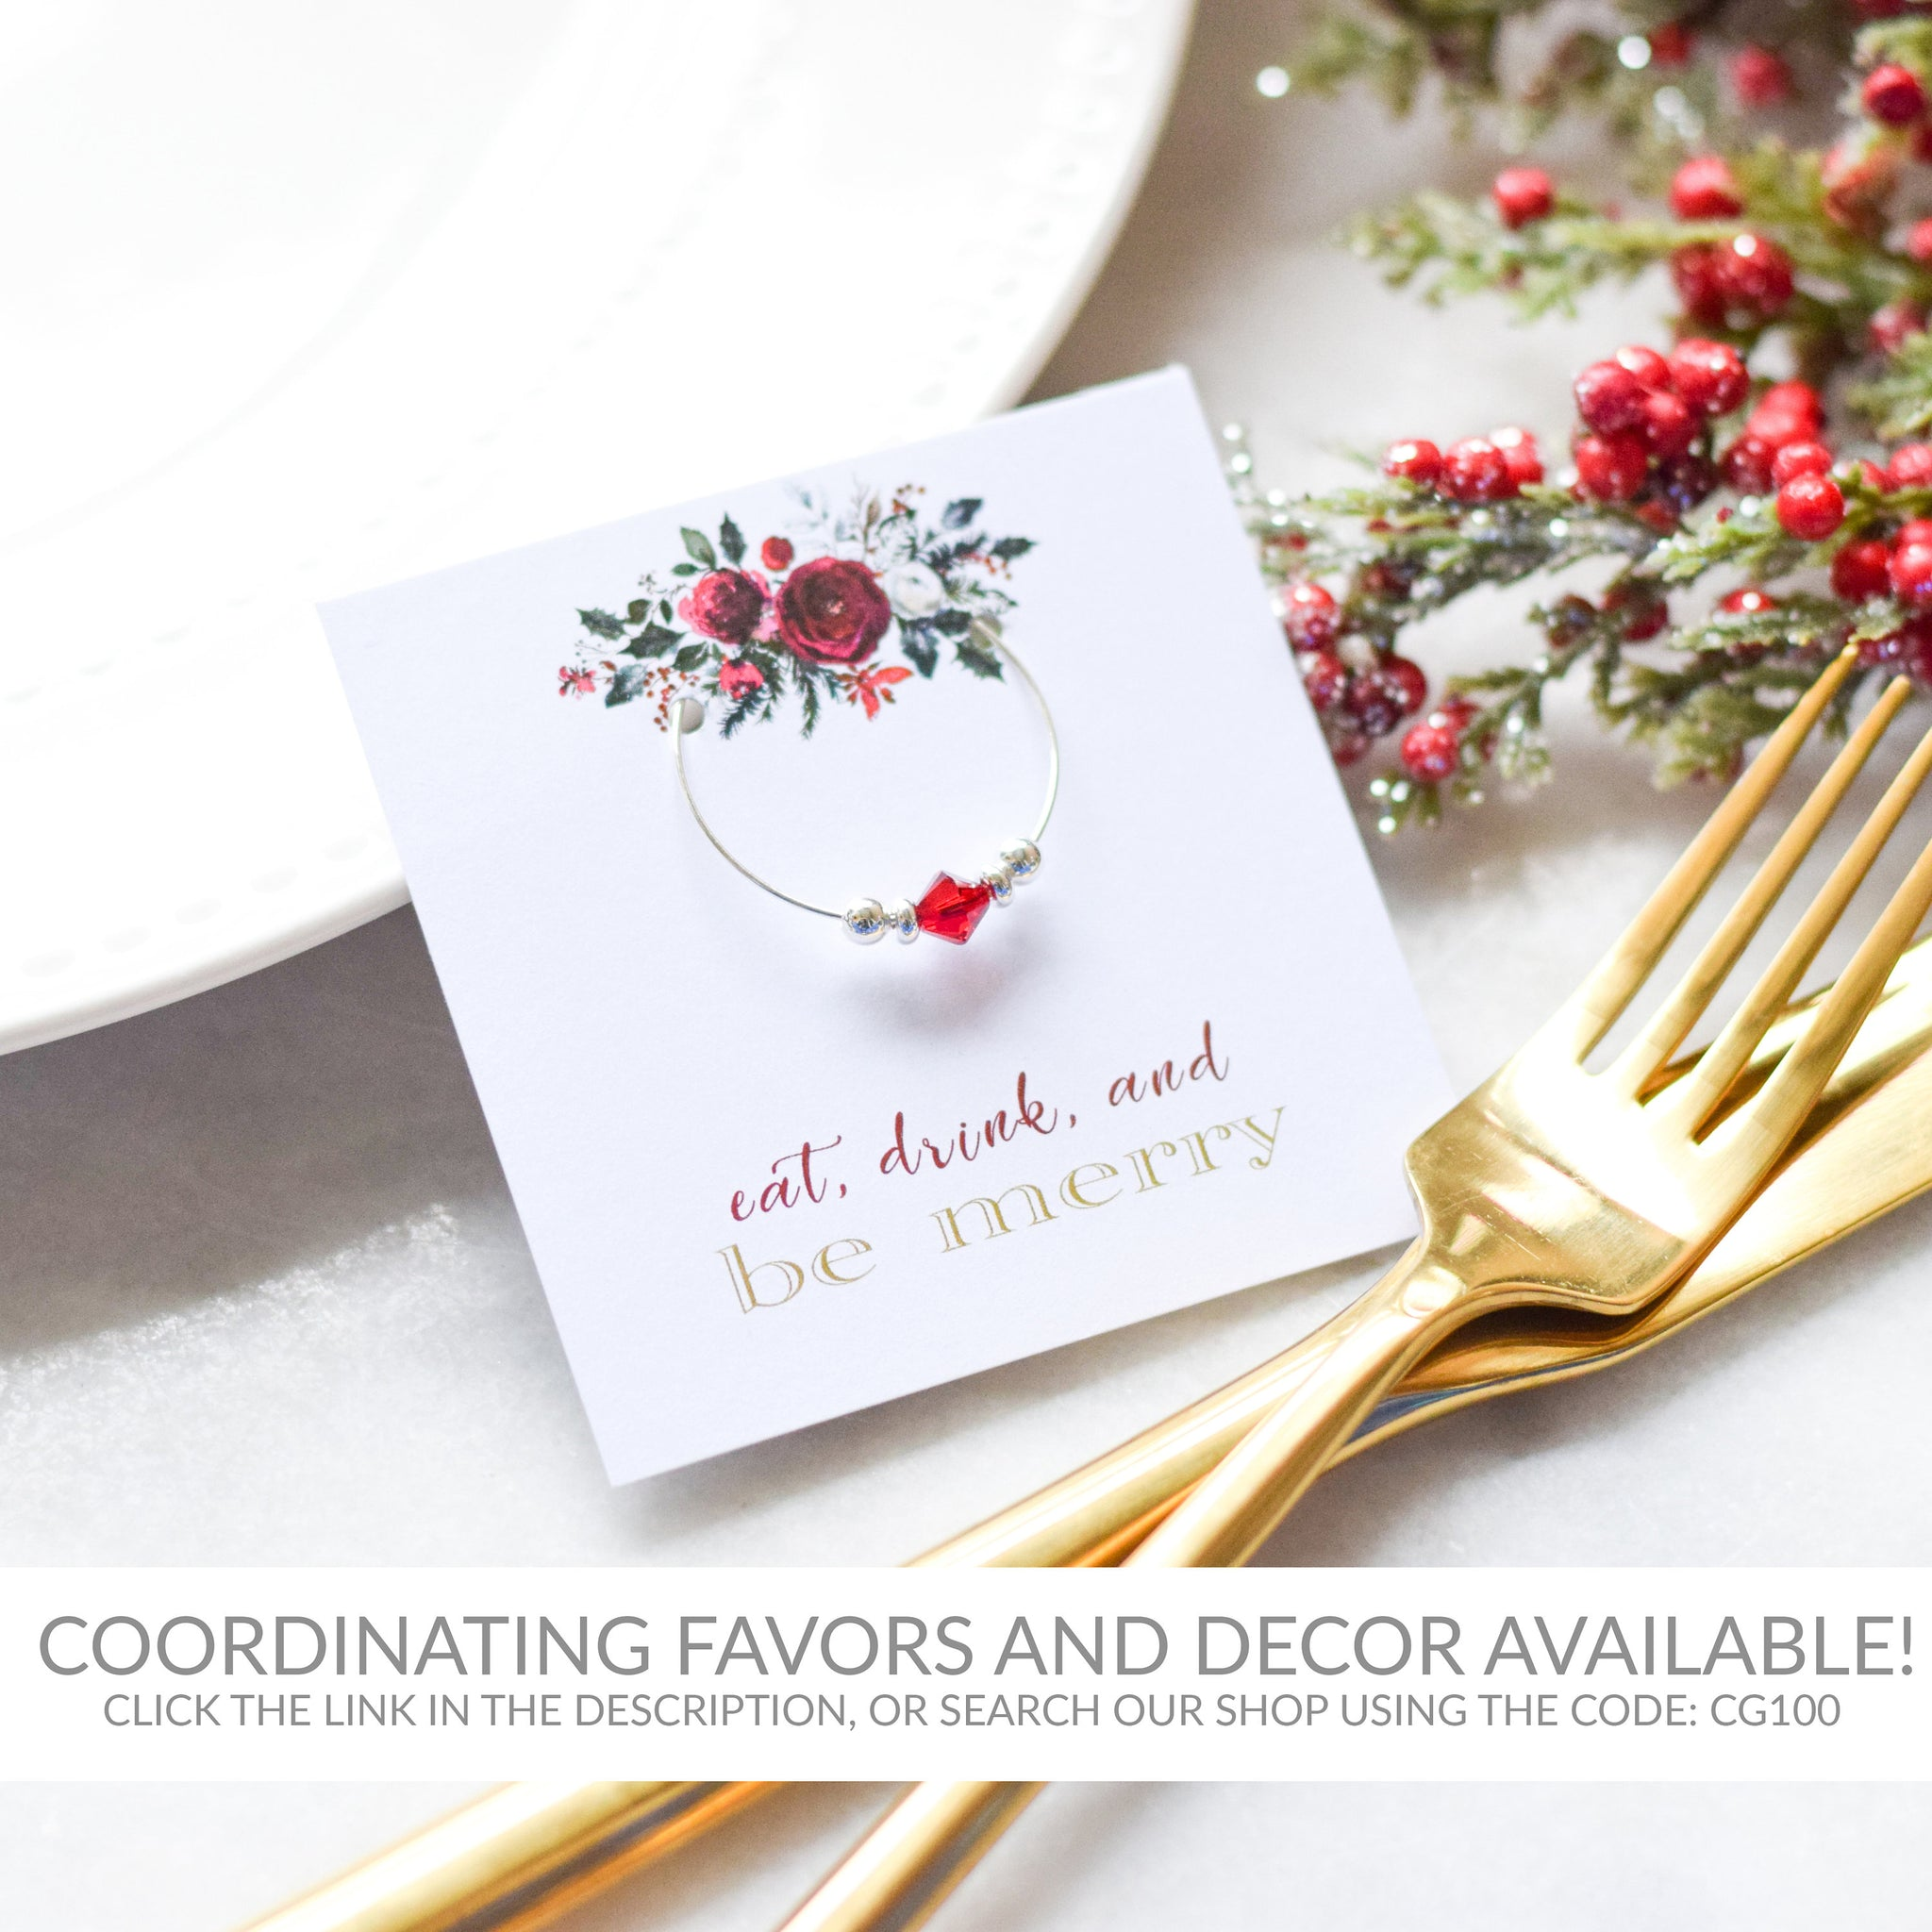 Christmas Baby Shower Addressee Sign Printable, Address an Envelope Sign, Winter Baby Shower Decorations, INSTANT DOWNLOAD - CG100